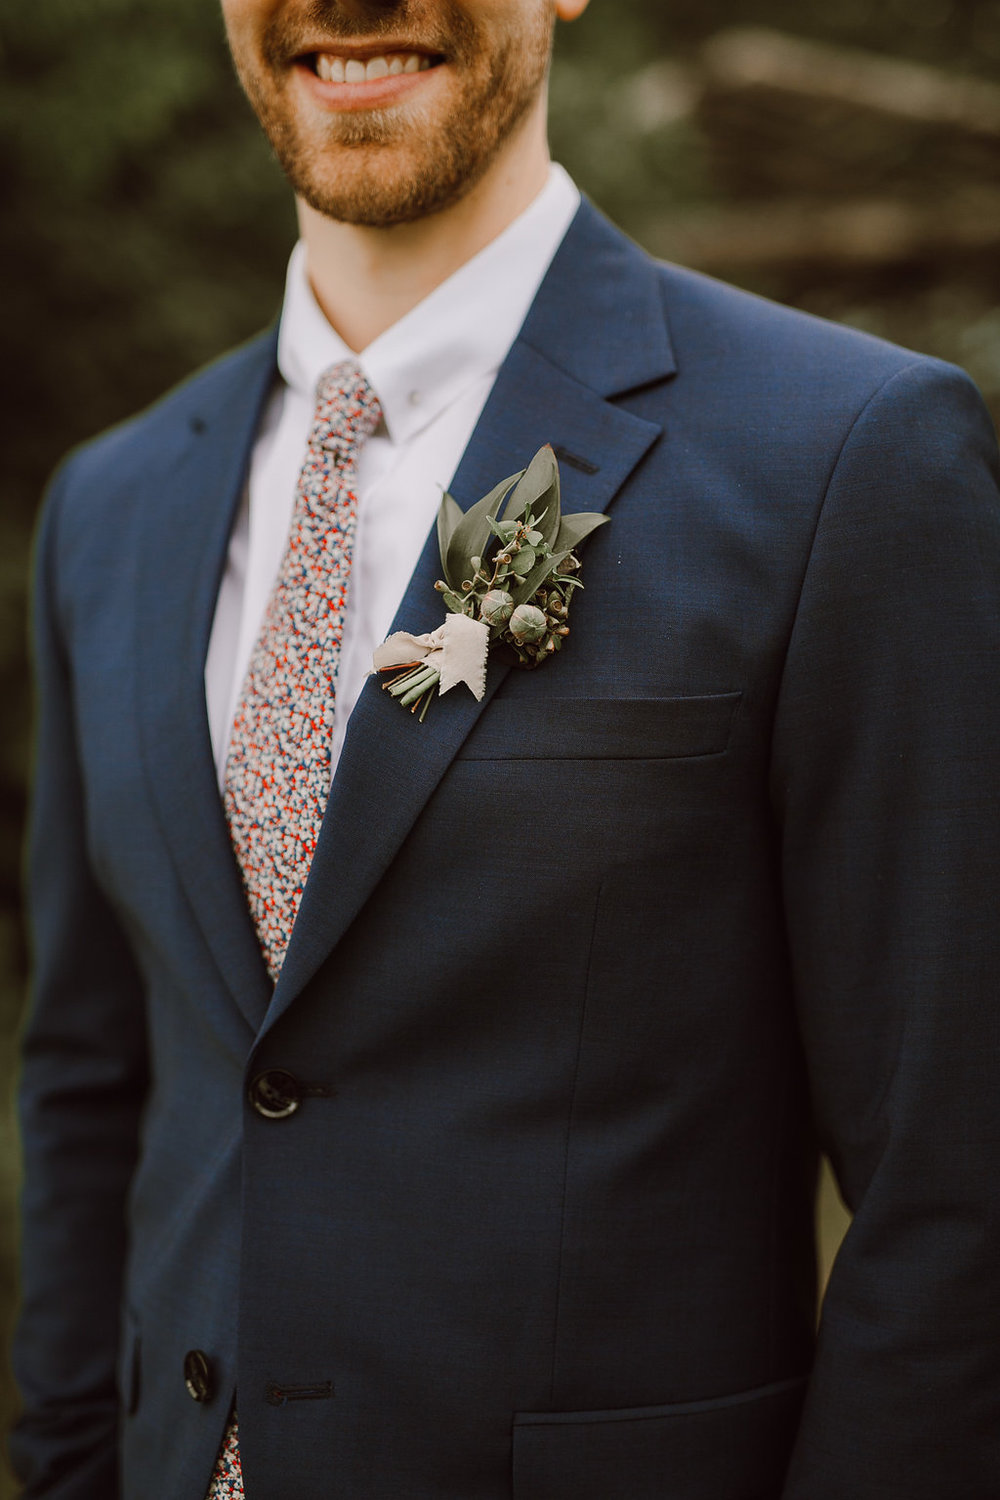 Textured Greenery Boutonnieres - Wedding Flower Inspiration